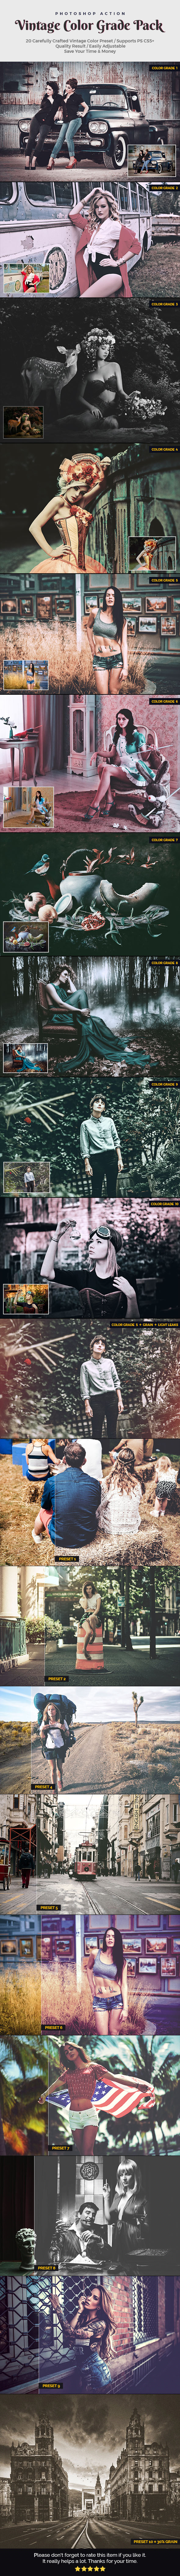 Vintage Color Grade Pack - Photo Effects Actions